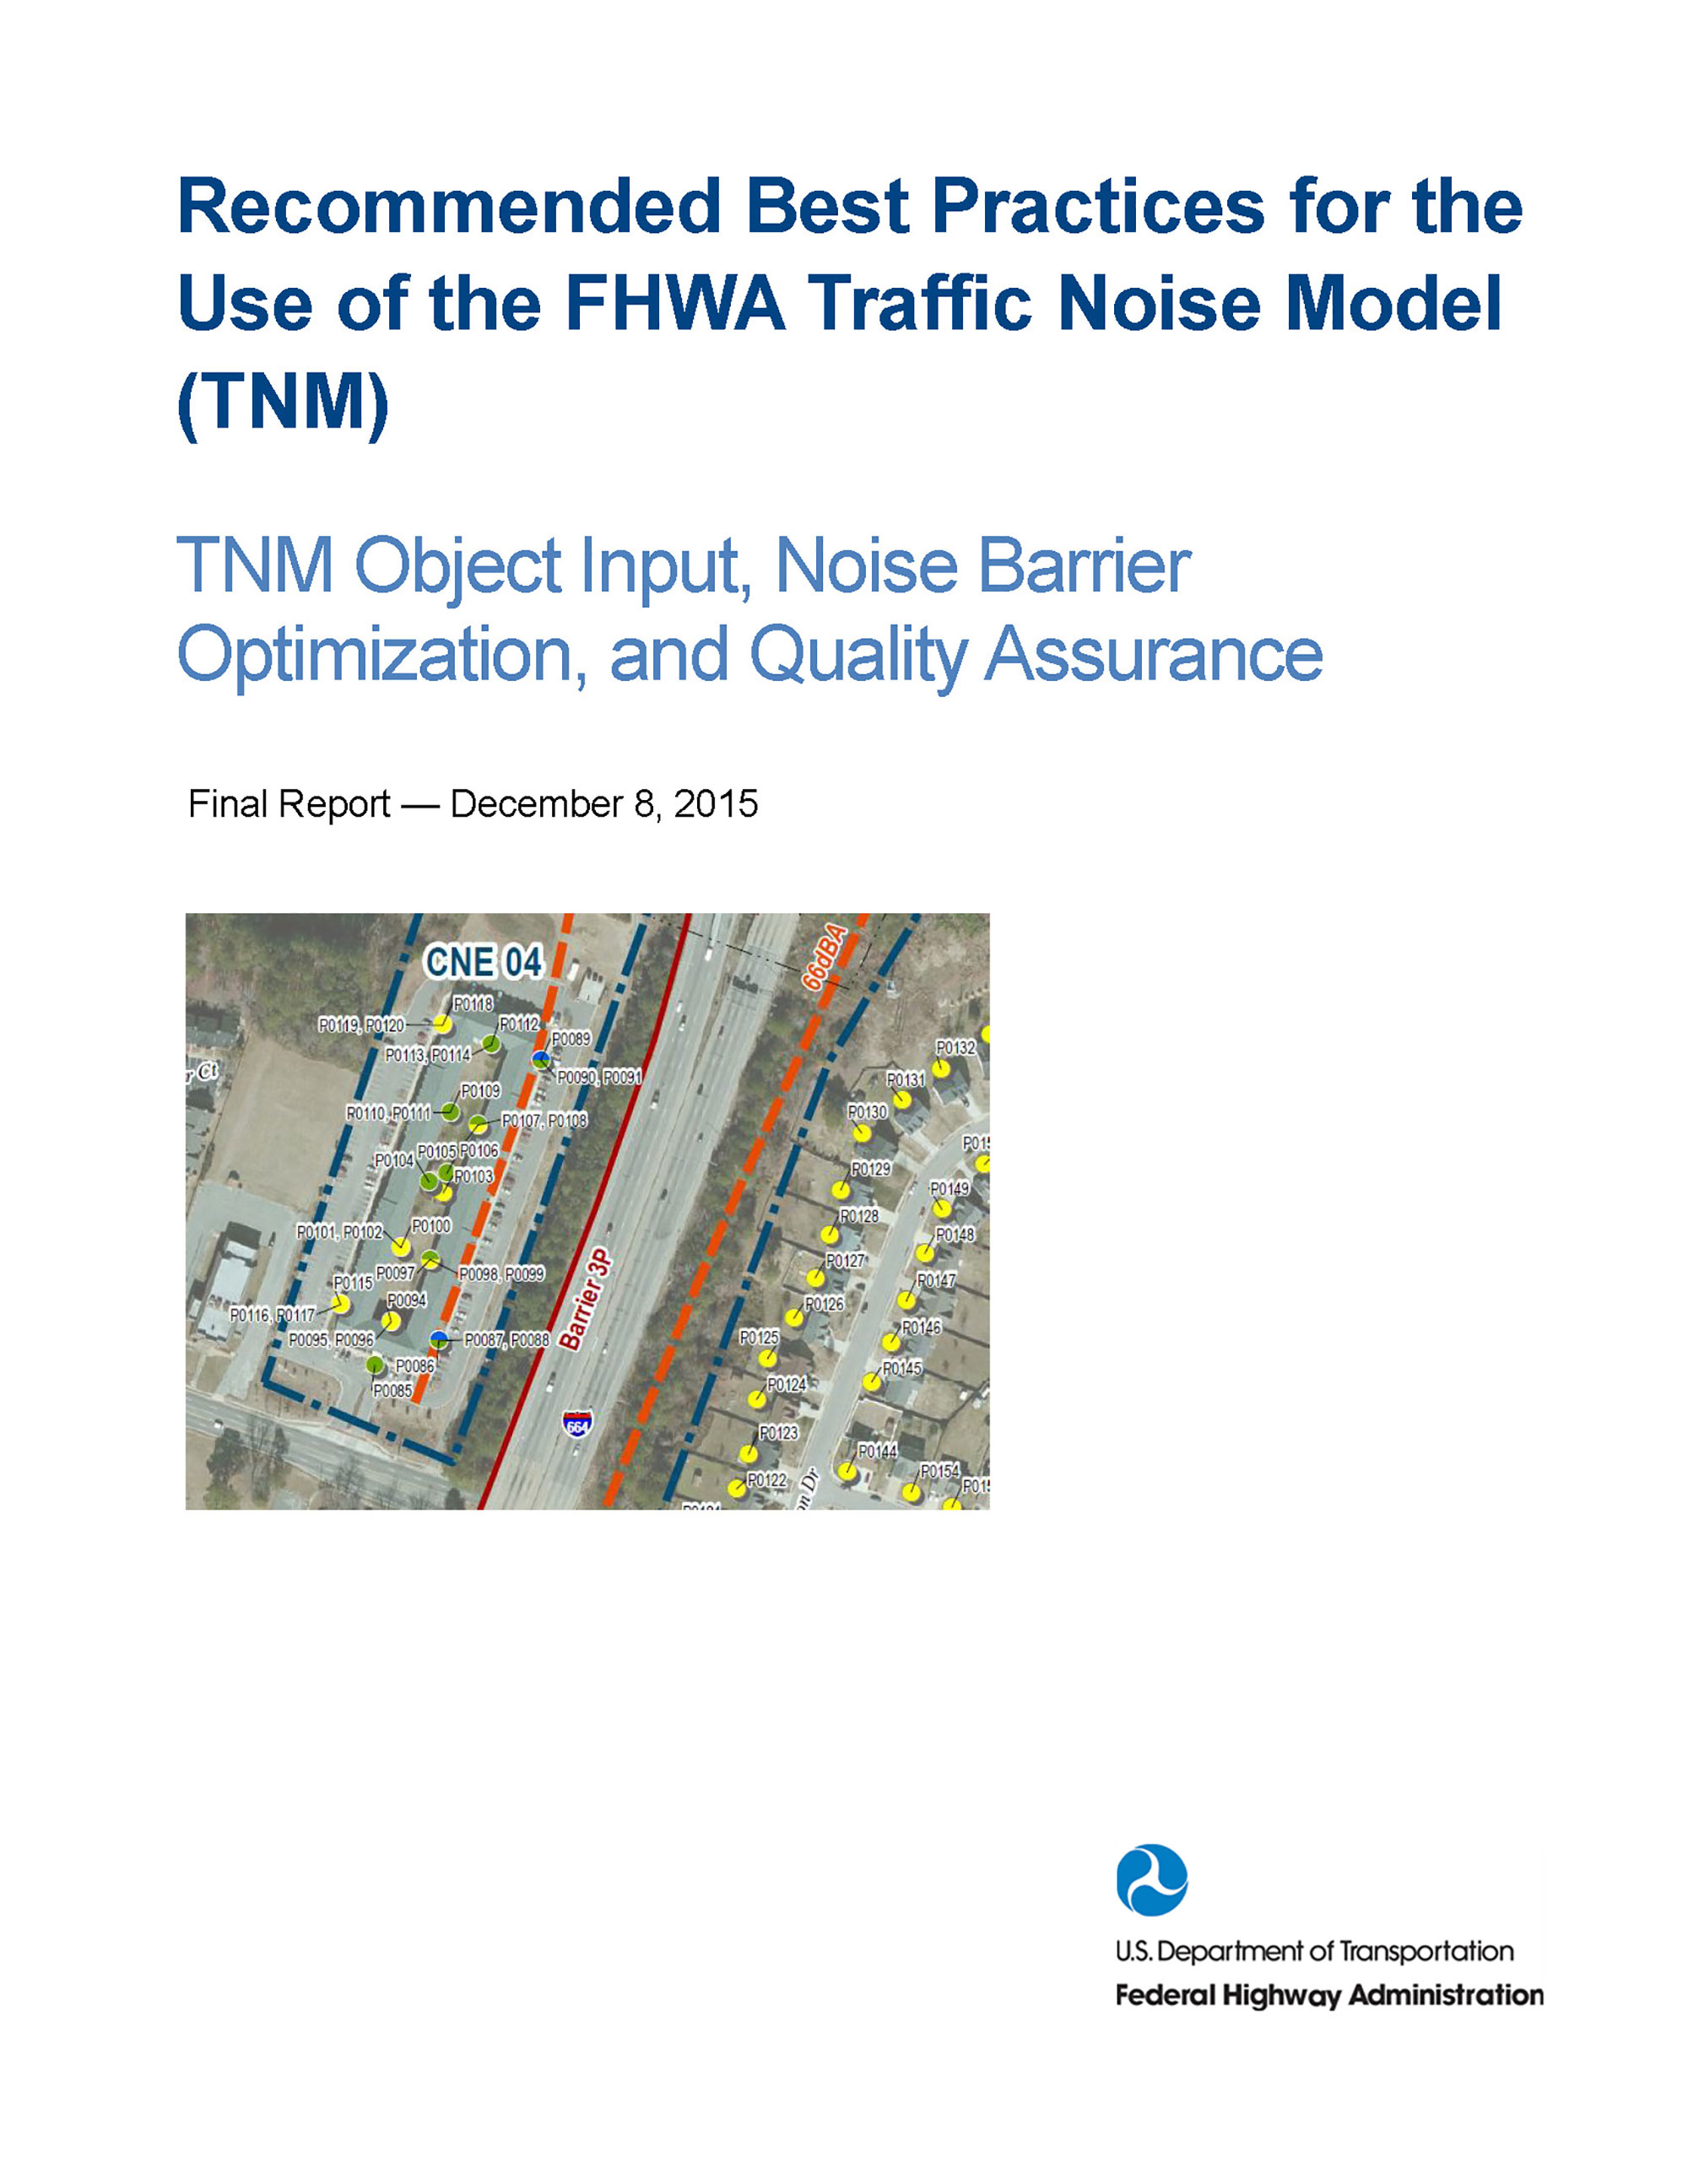 FHWA Recommended Best Practices for the Use of the Traffic Noise Model